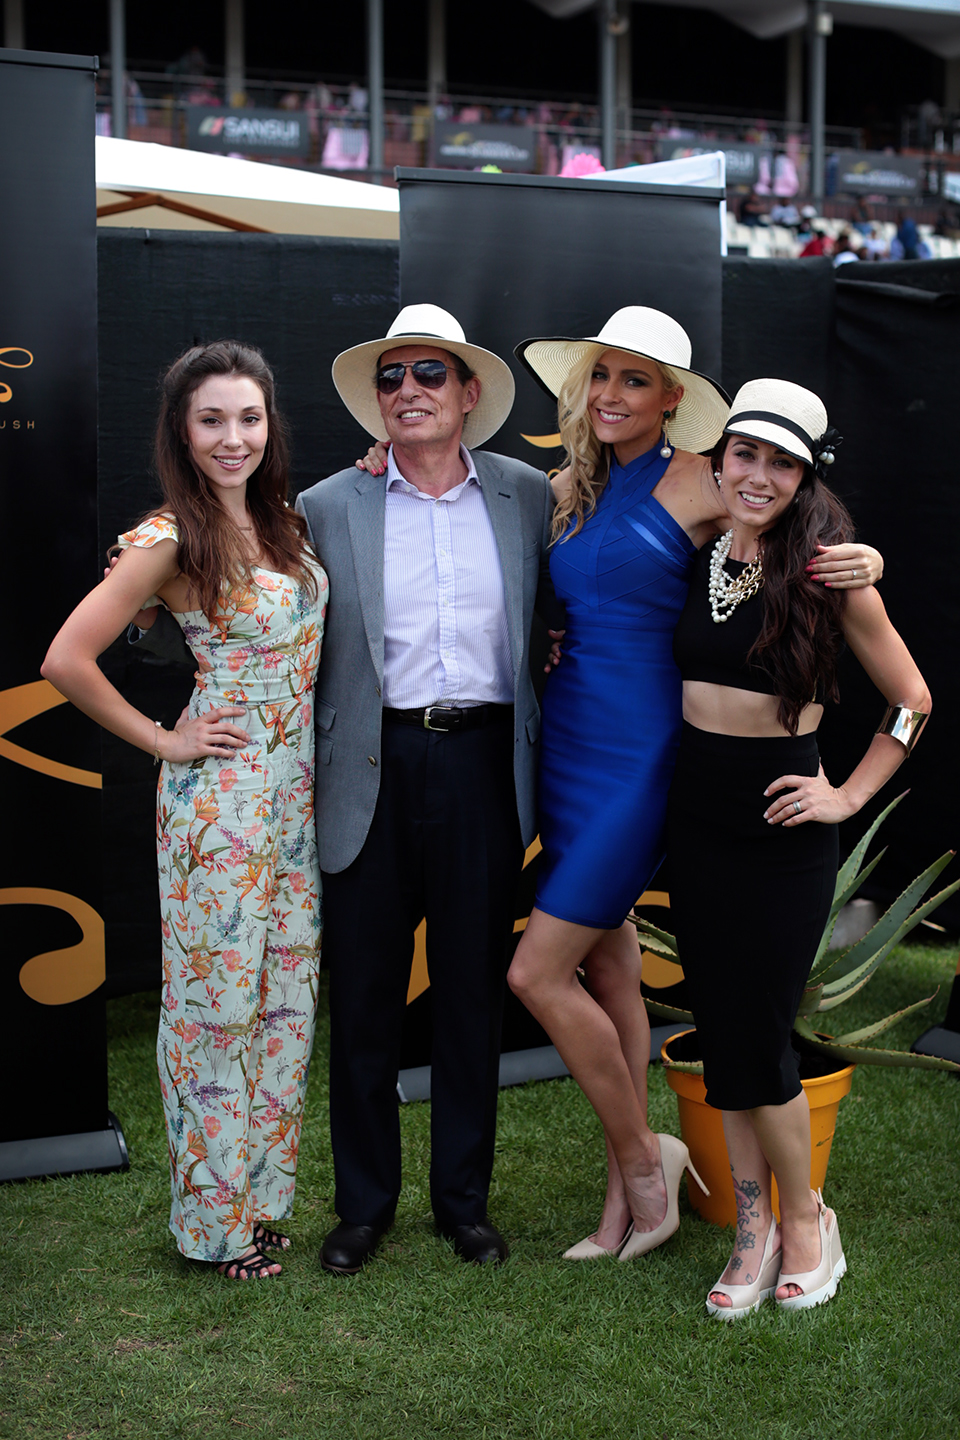 sansui-summer-cup-horseracing-southafrica-blogger-lifestyle-blogger-016.jpg